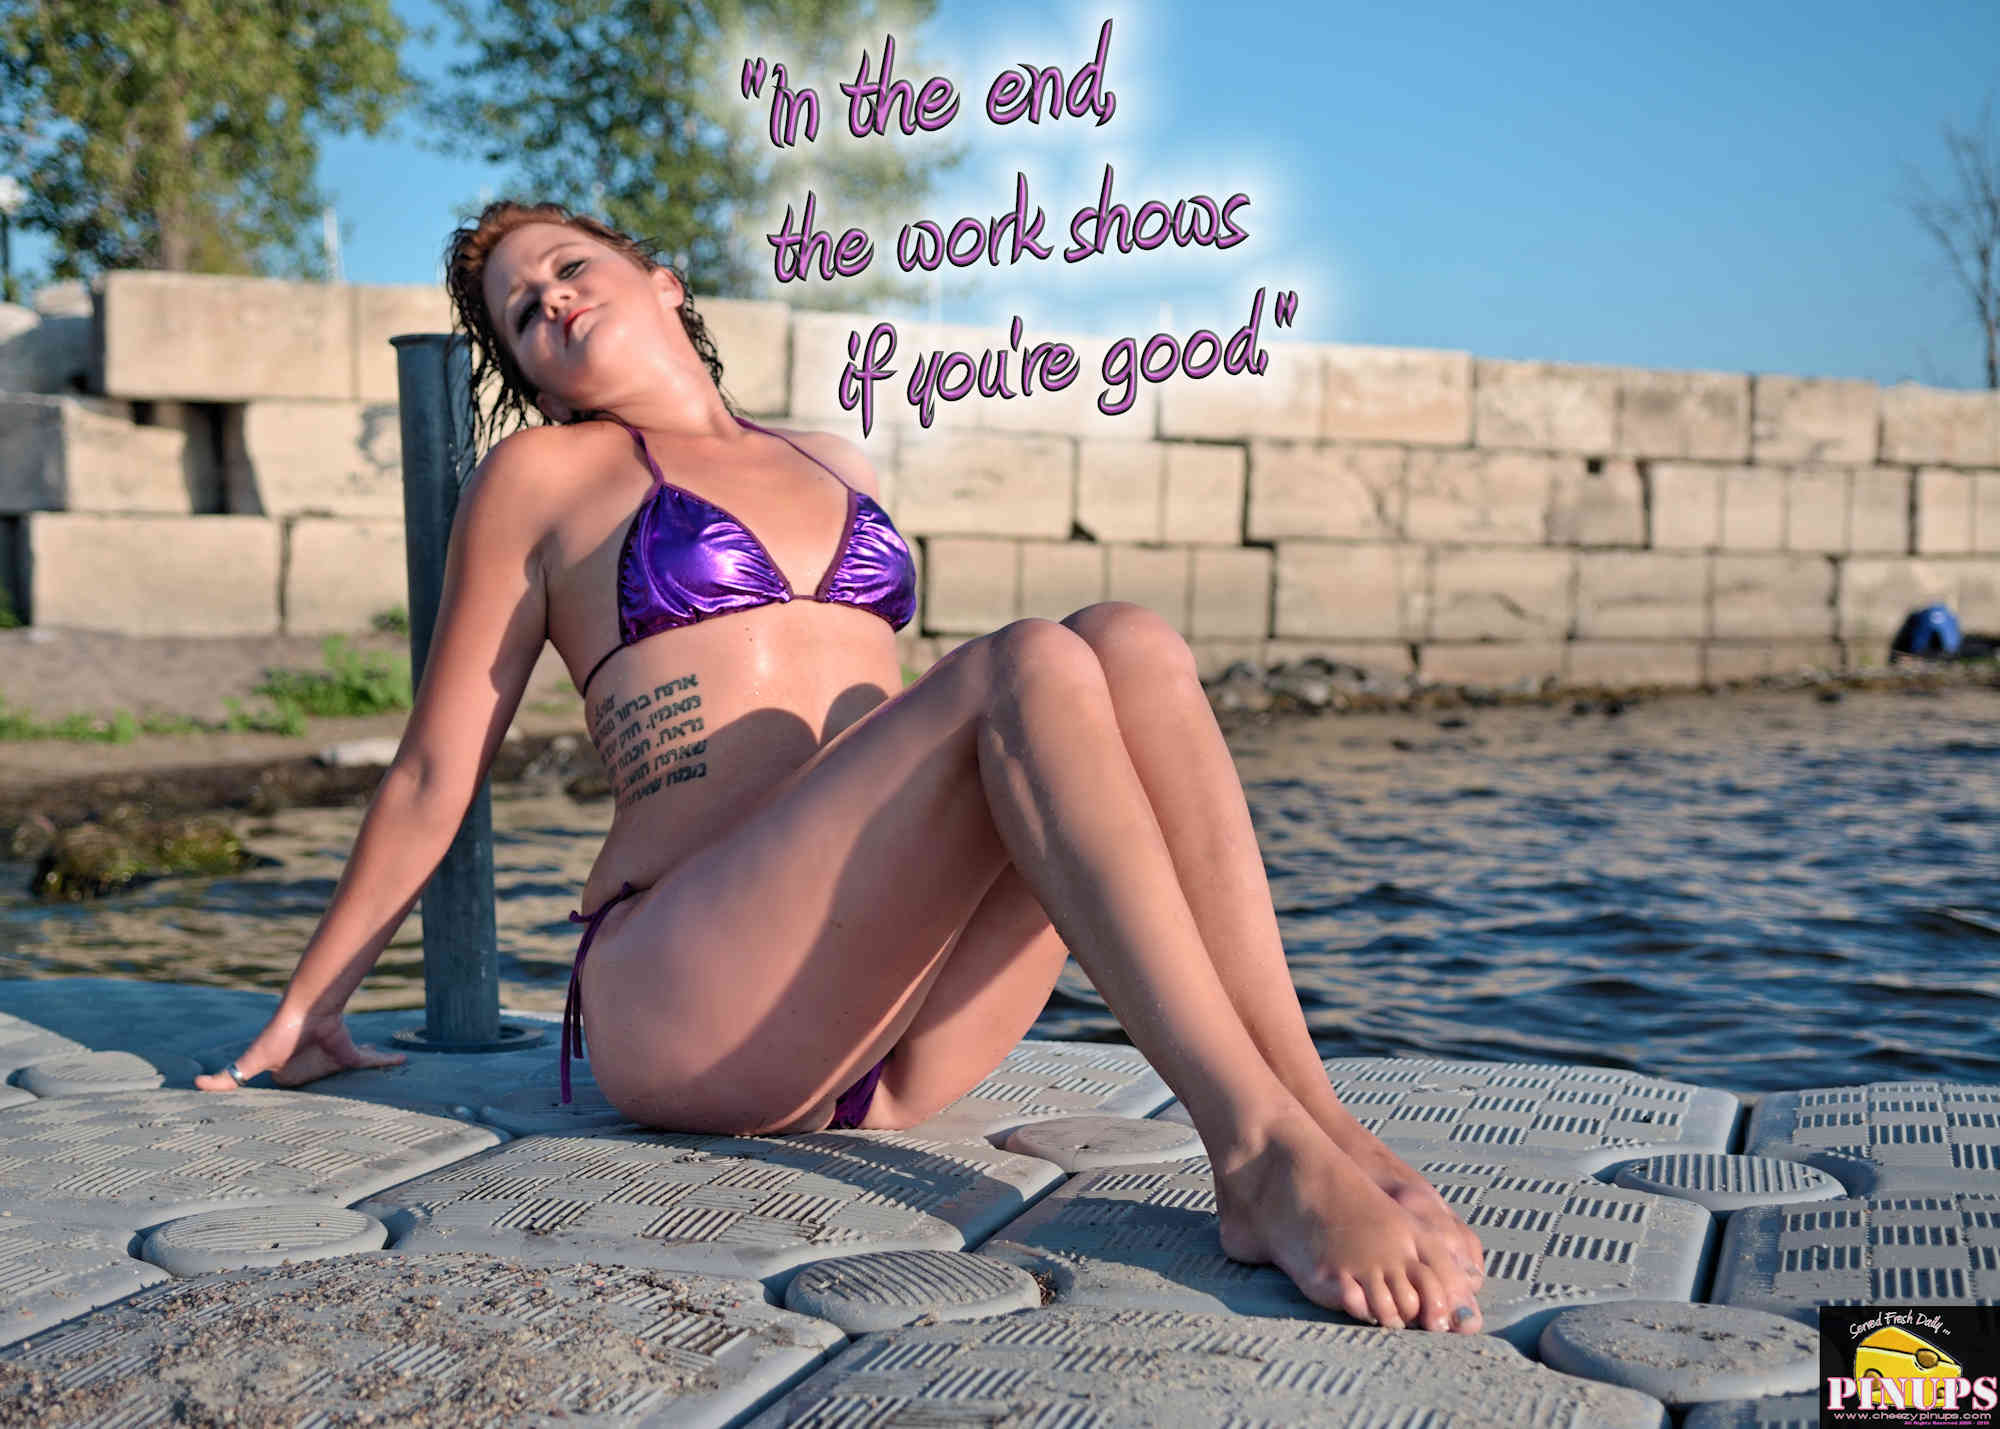 """Cheezy Pinup - August 23, 2018   """"In the end, the work shows if you're good."""" - Scott Caan Model: Yaakova"""